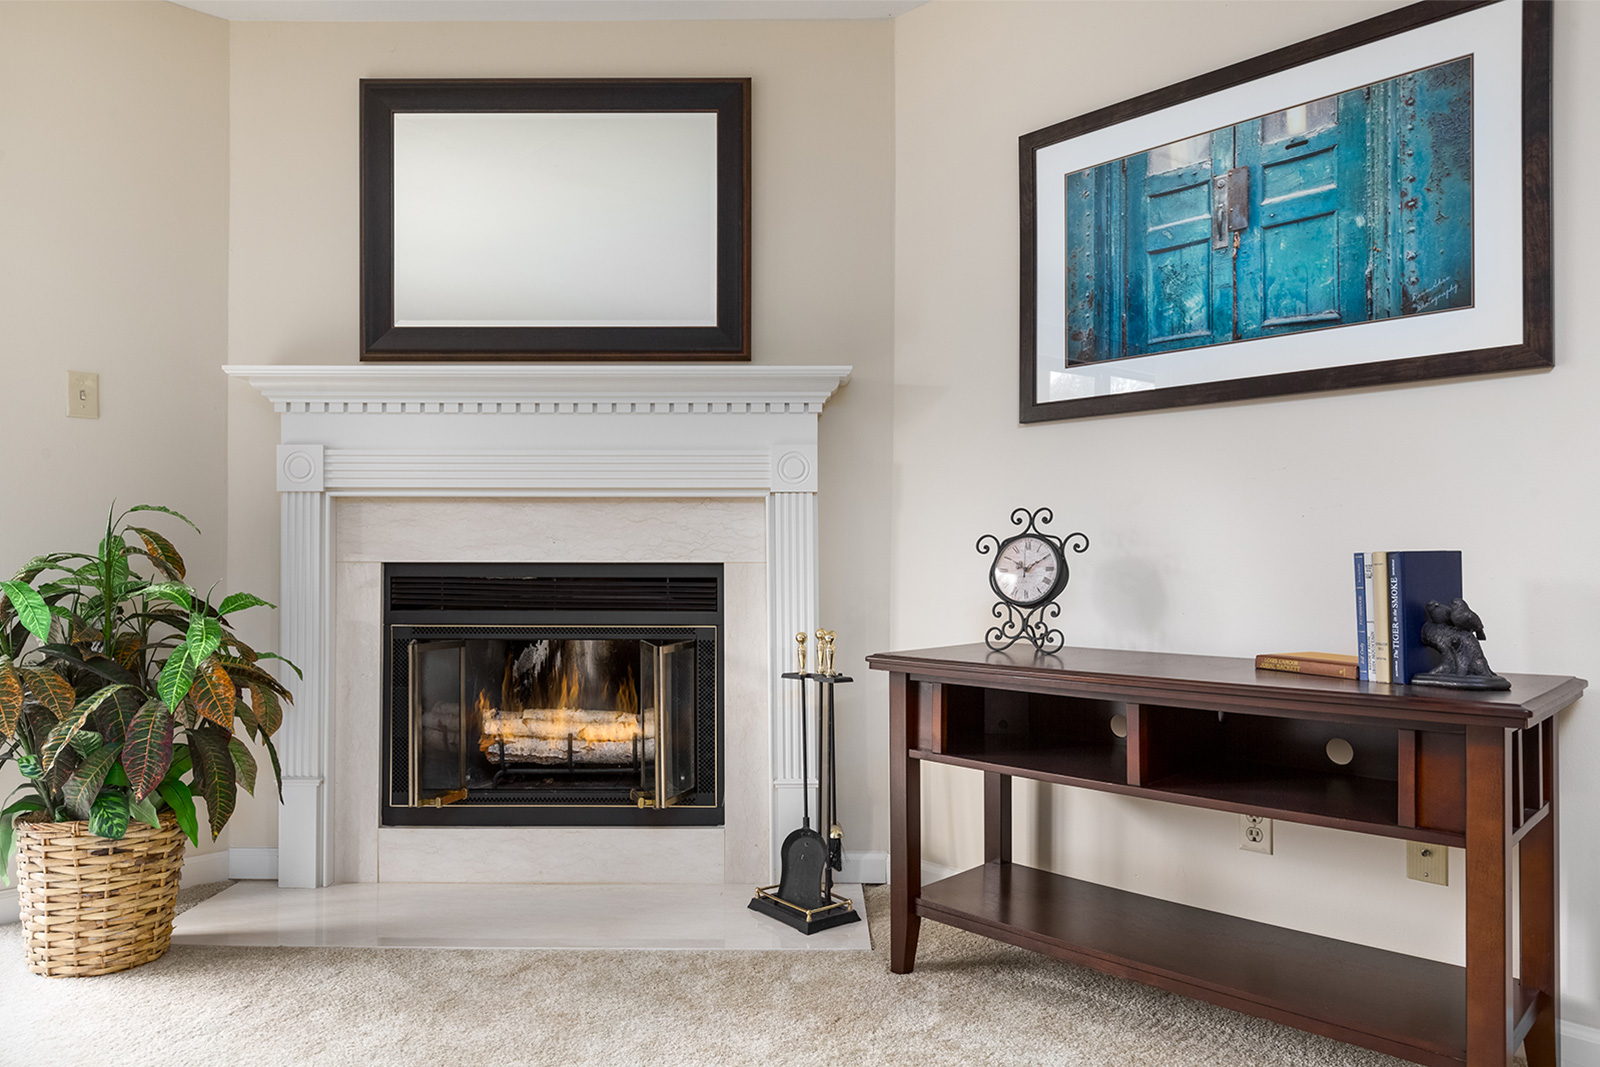 A living room fireplace and mantle at Chesterfield Village Apartments